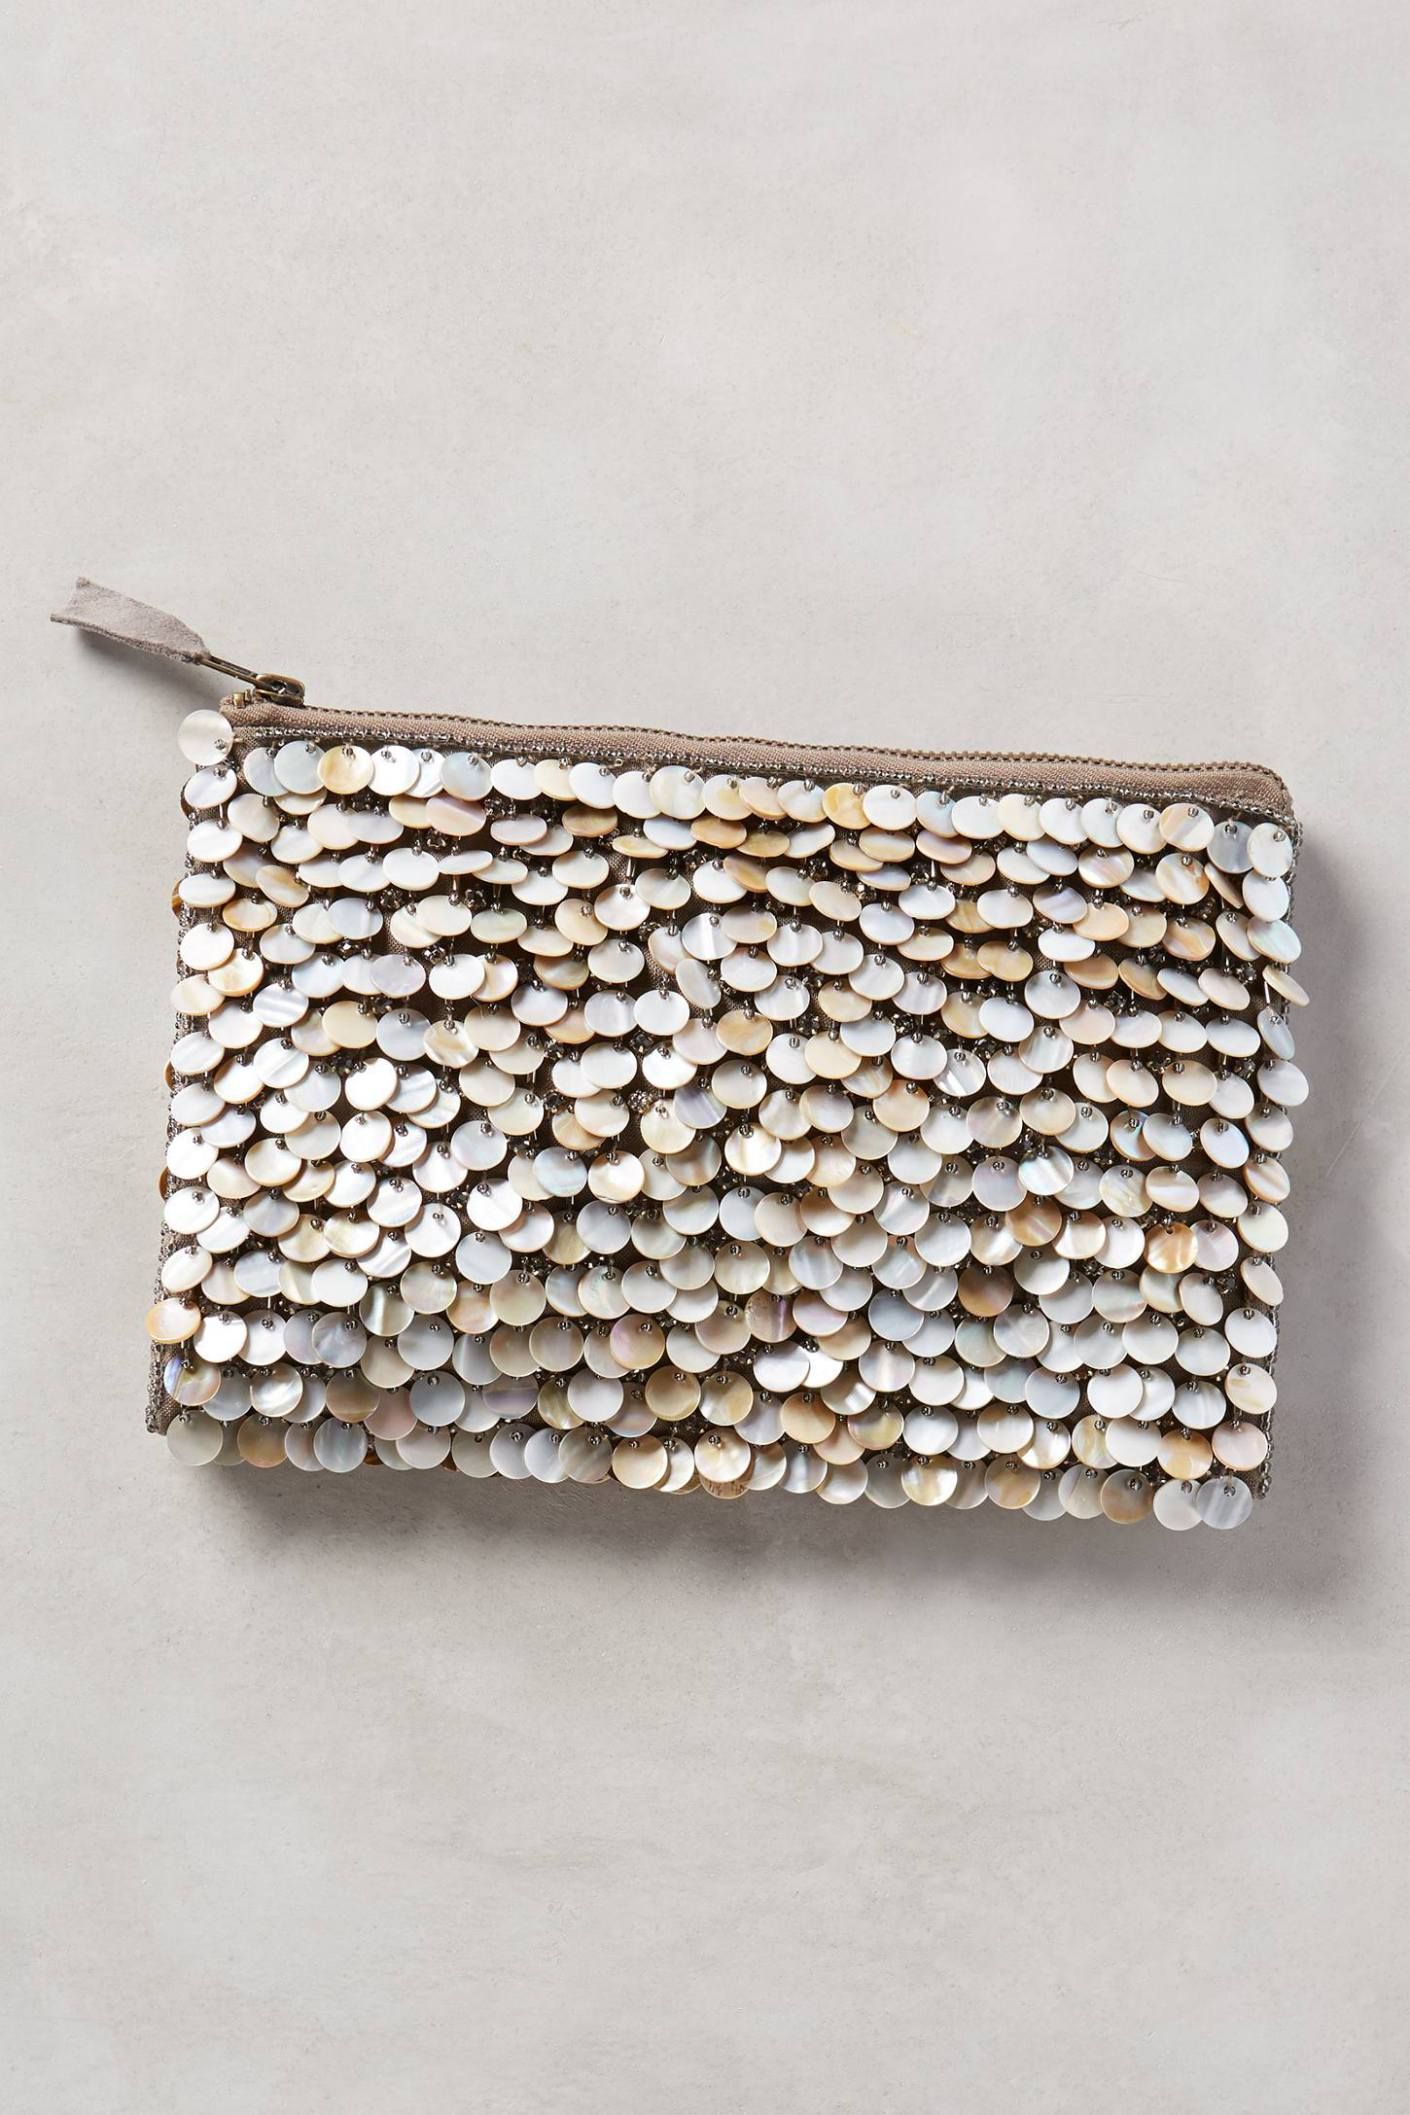 Anthropologieus new arrivals bags u totes bags anthropology and